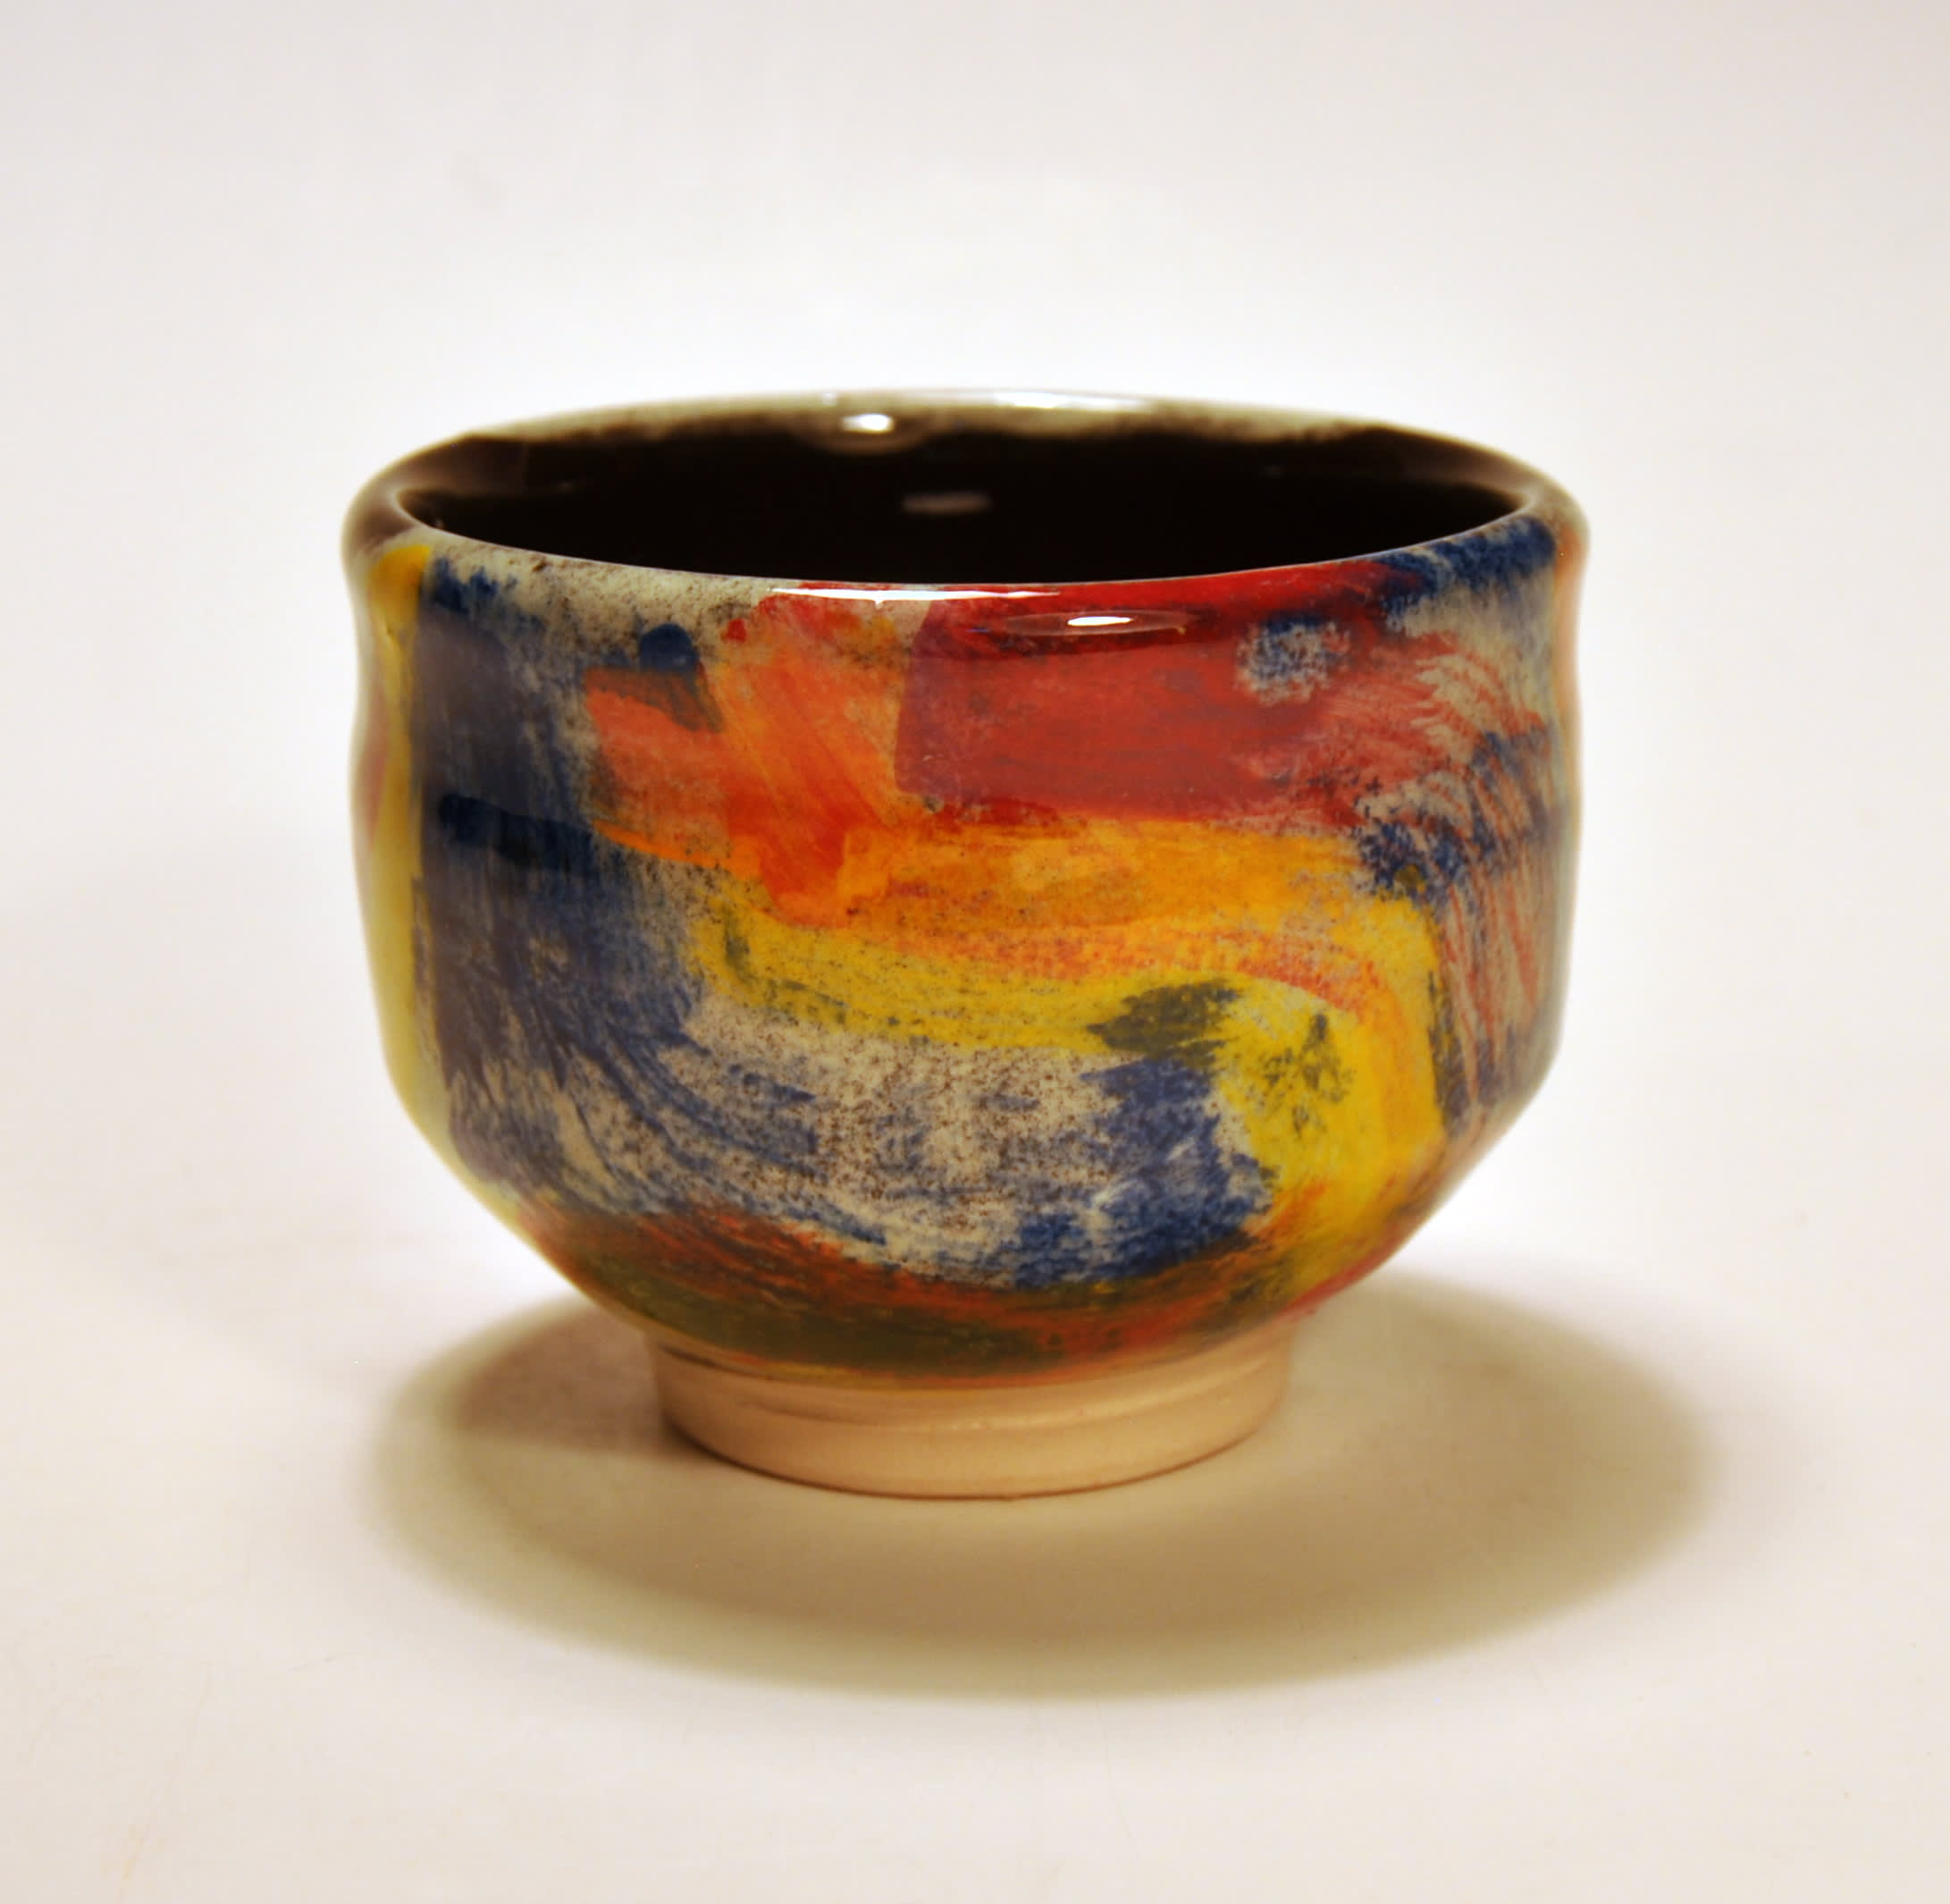 """<span class=""""link fancybox-details-link""""><a href=""""/artists/100-john-pollex/works/5380-john-pollex-tea-bowl-2018/"""">View Detail Page</a></span><div class=""""artist""""><strong>John Pollex</strong></div> b. 1941 <div class=""""title""""><em>Tea Bowl</em>, 2018</div> <div class=""""signed_and_dated"""">impressed with the artist's seal mark 'JP'</div> <div class=""""medium"""">white earthenware decorated with coloured slips</div><div class=""""price"""">£70.00</div><div class=""""copyright_line"""">Copyright the Artist</div>"""